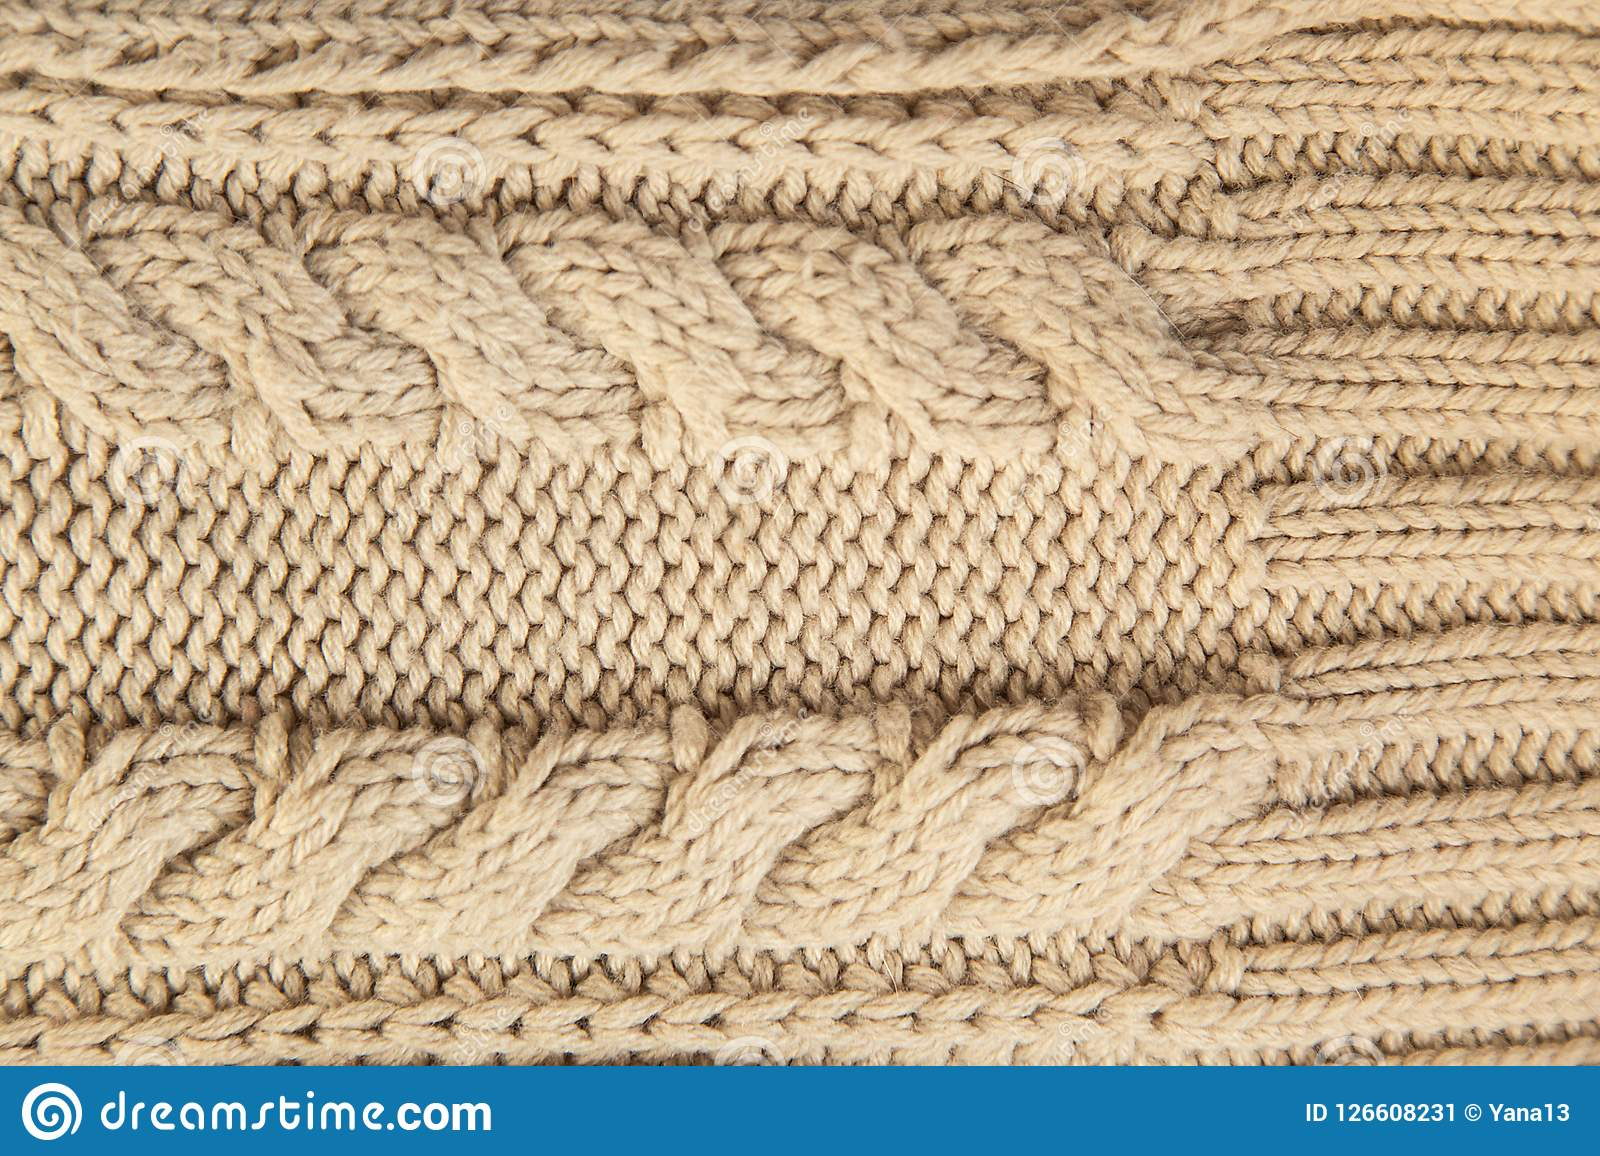 92dde1f30ca3 Close up of beige knitted winter sweater with pattern as textured material  concept